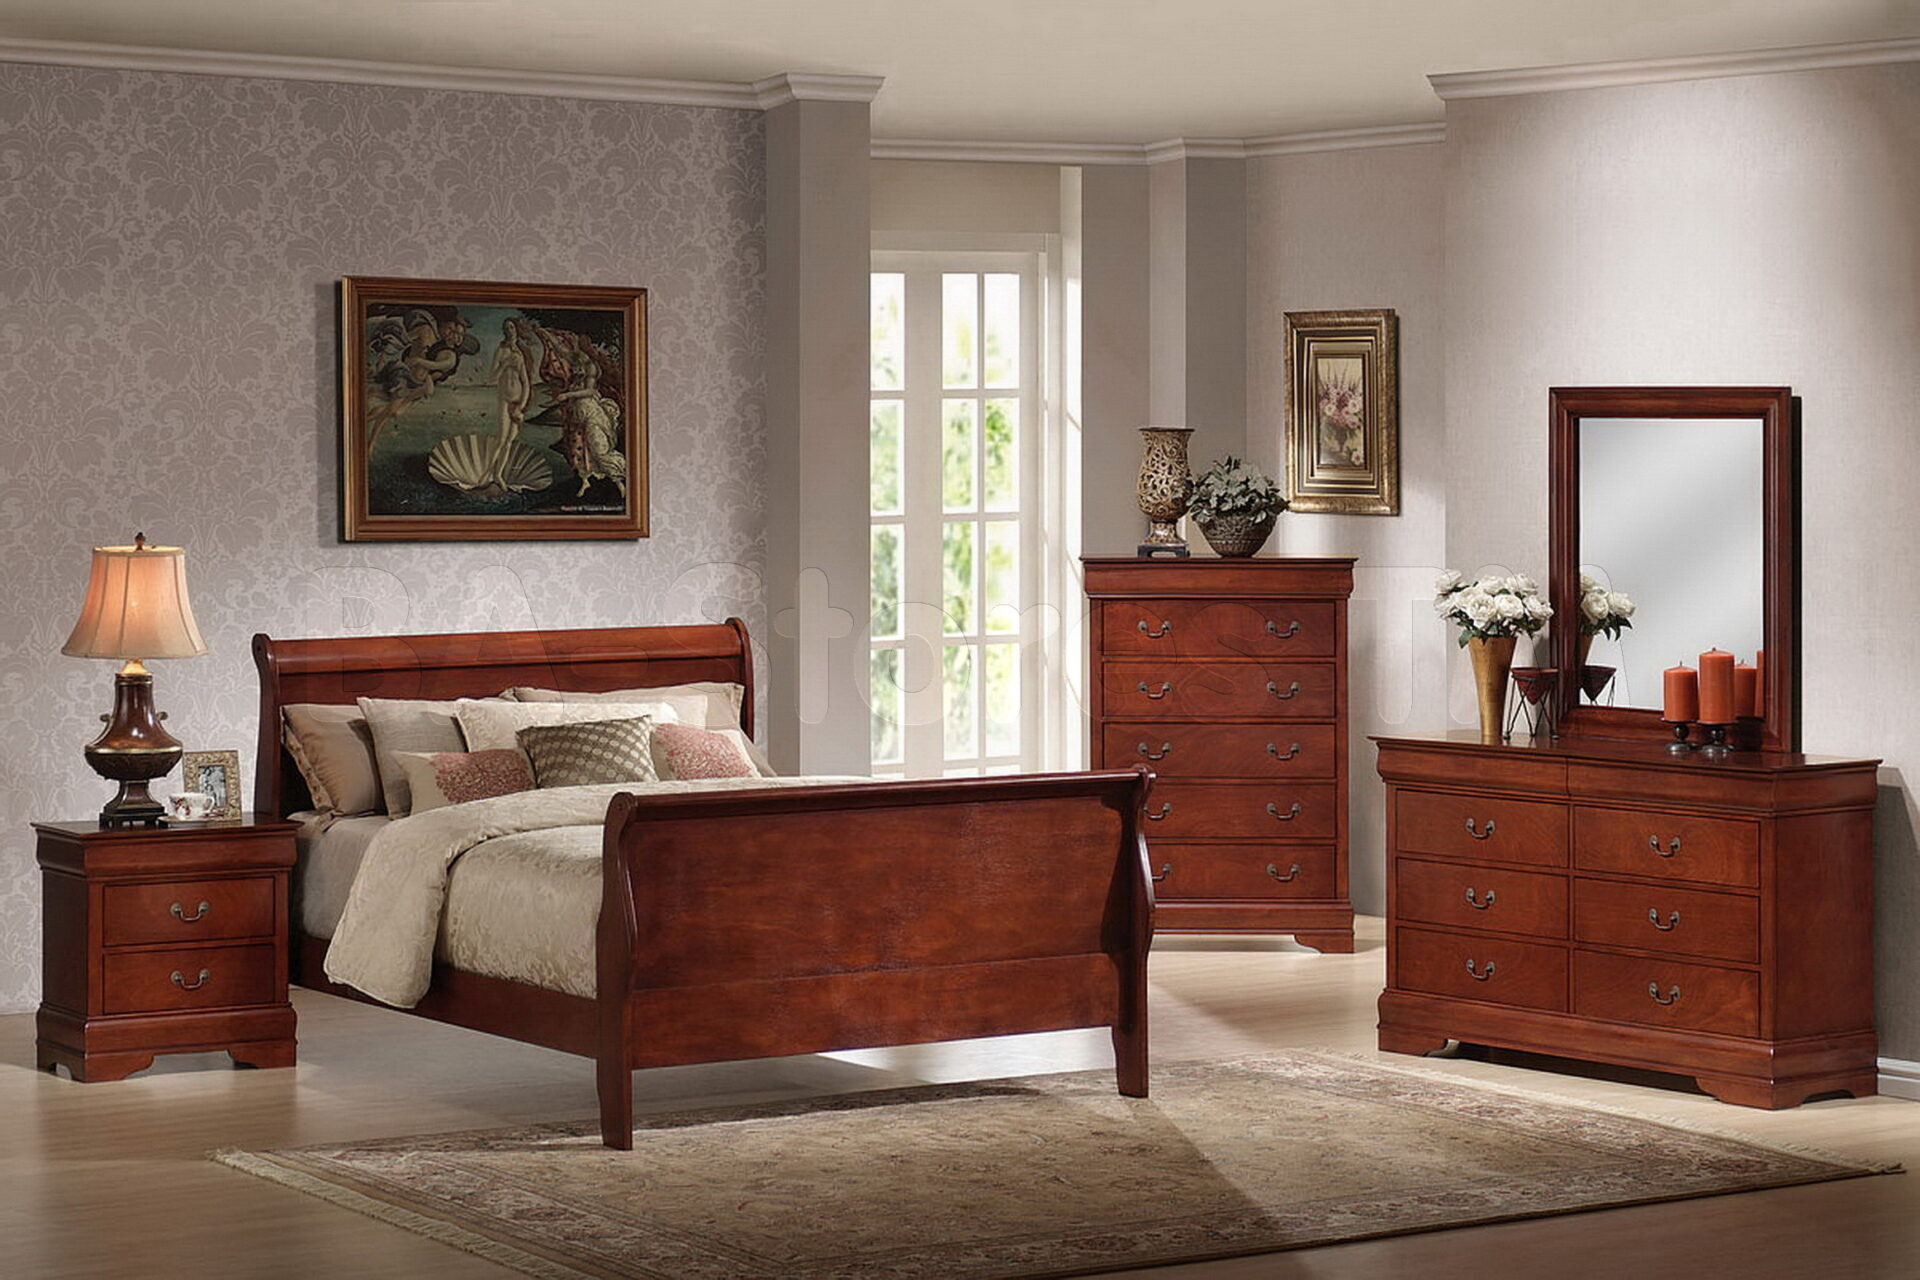 Wooden furniture tips pricing shopping for Bedroom furniture ideas